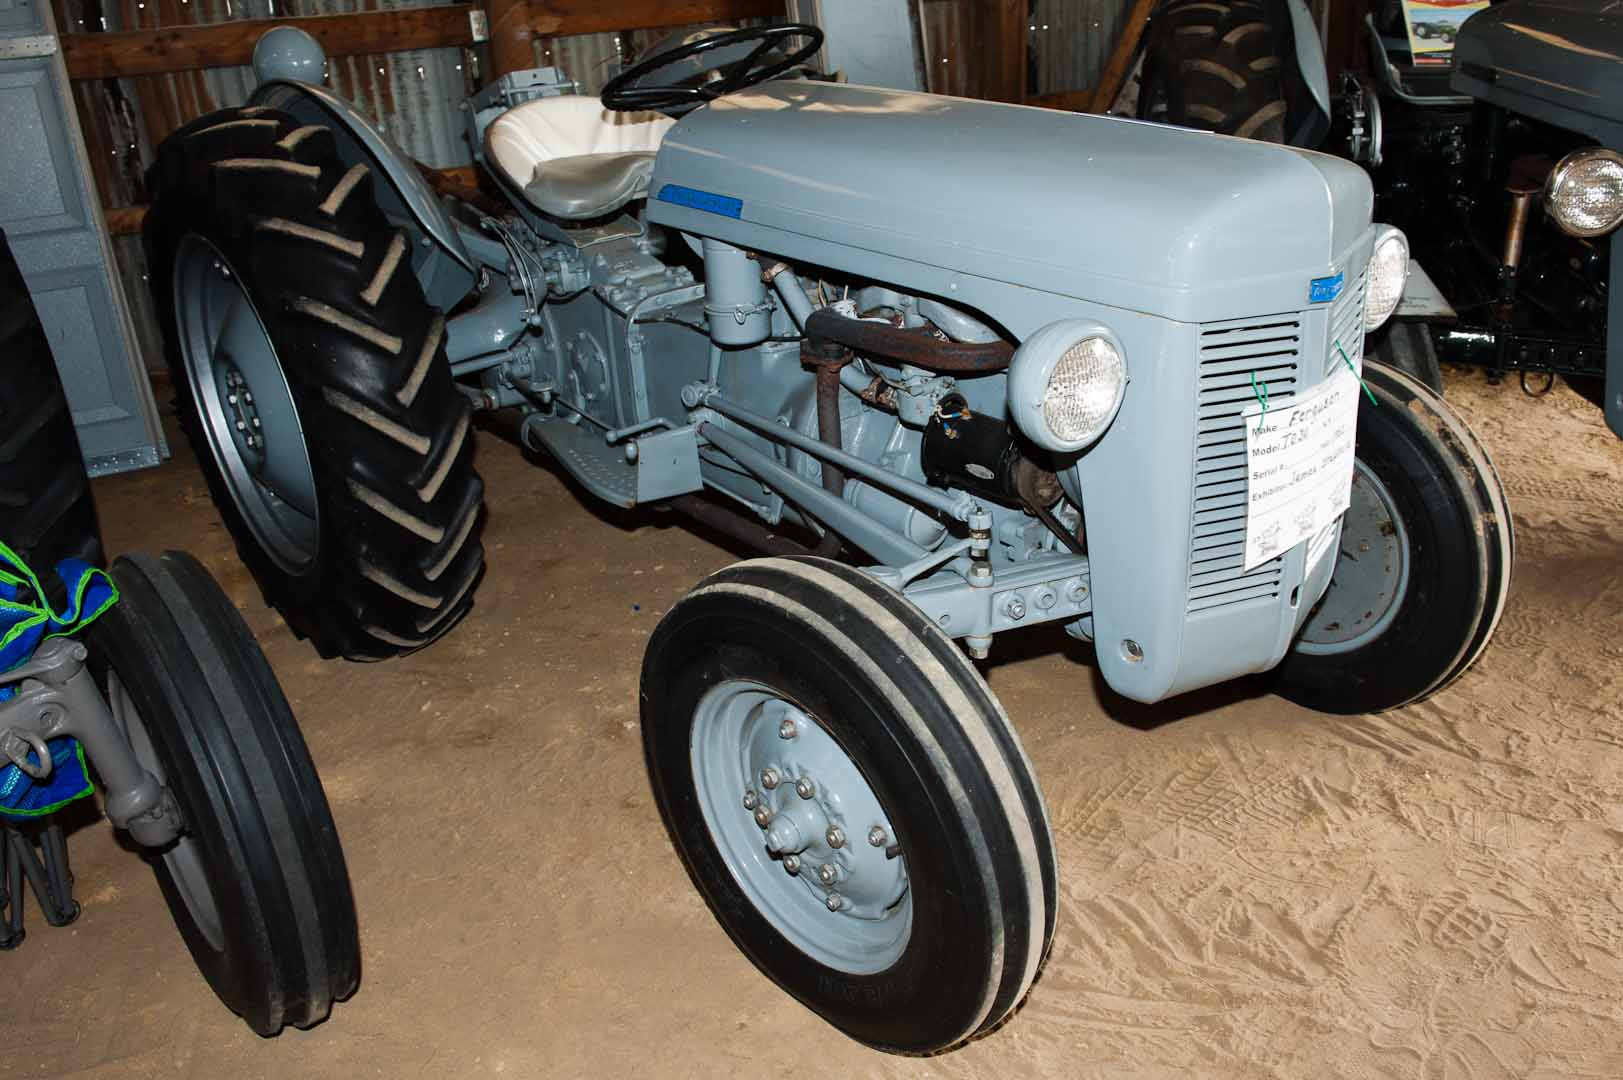 1953 TO-30 owned by James Stephens of Fredericksburg, IN. SN TO-124665.